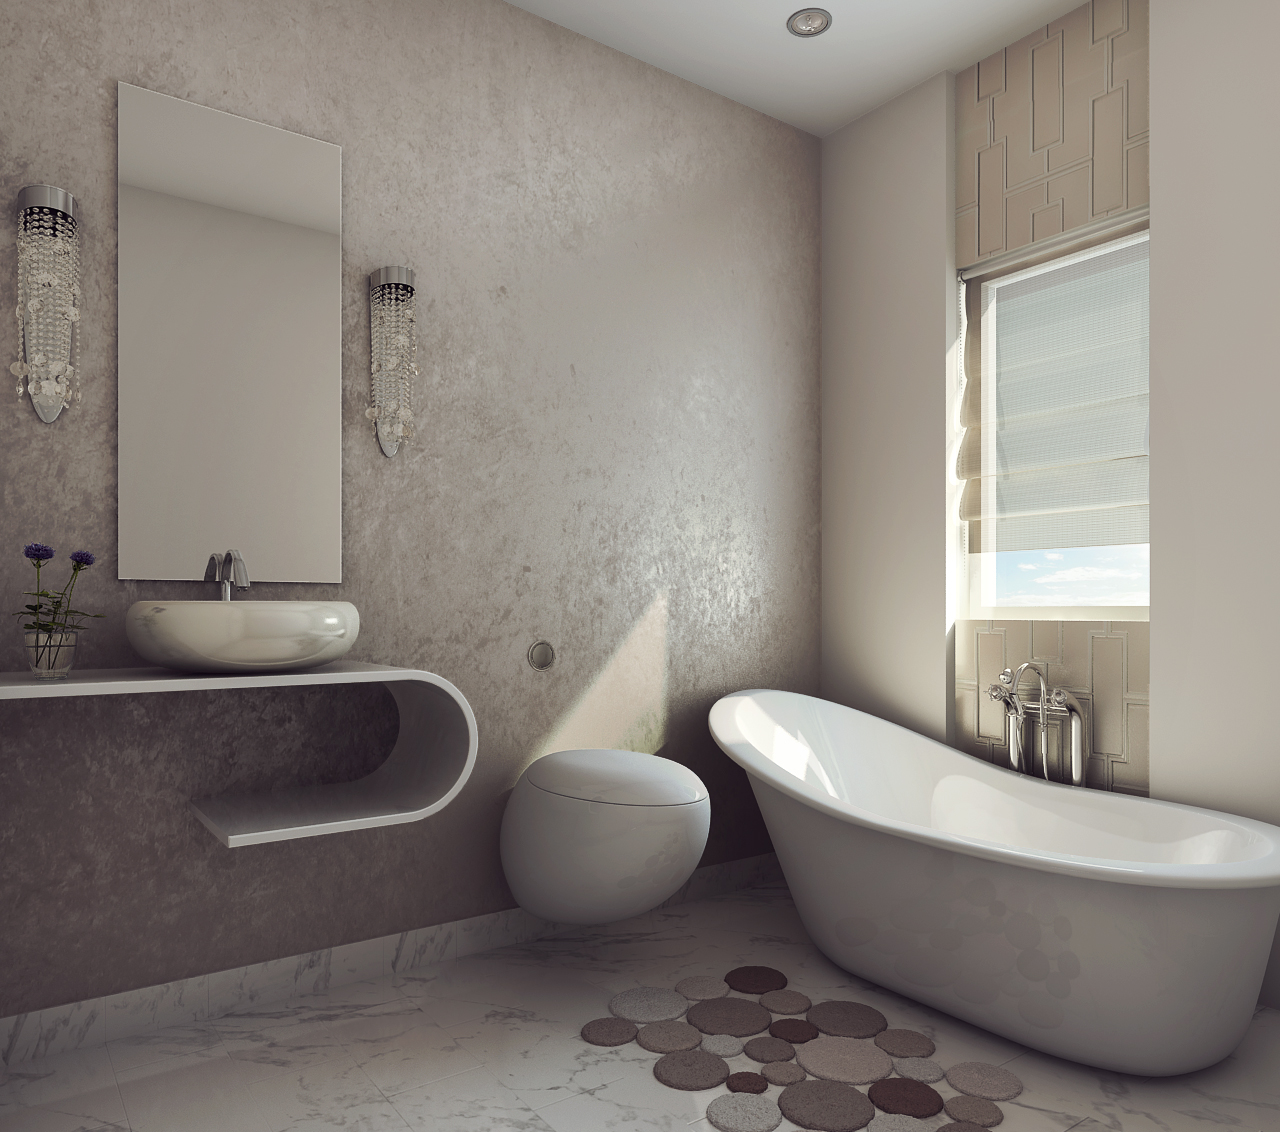 Modern earthy design bath room free 3d model max for Decor 3d model